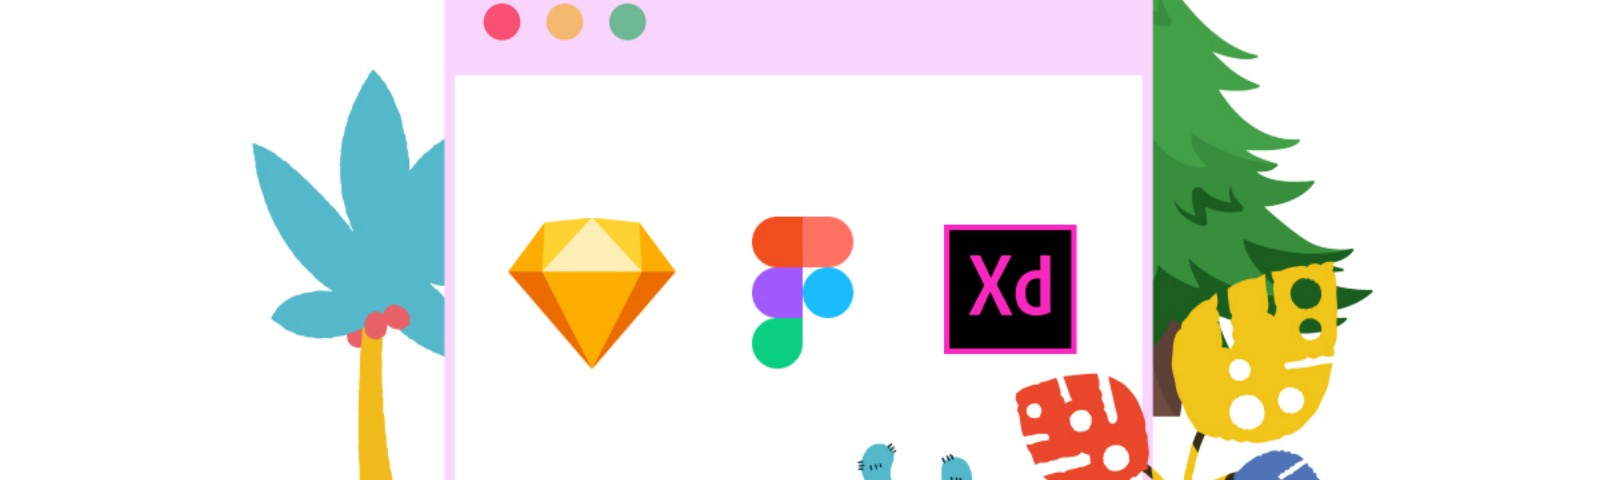 An illustration of Sketch, Figma, and Adobe XD logo inside of a browser window.